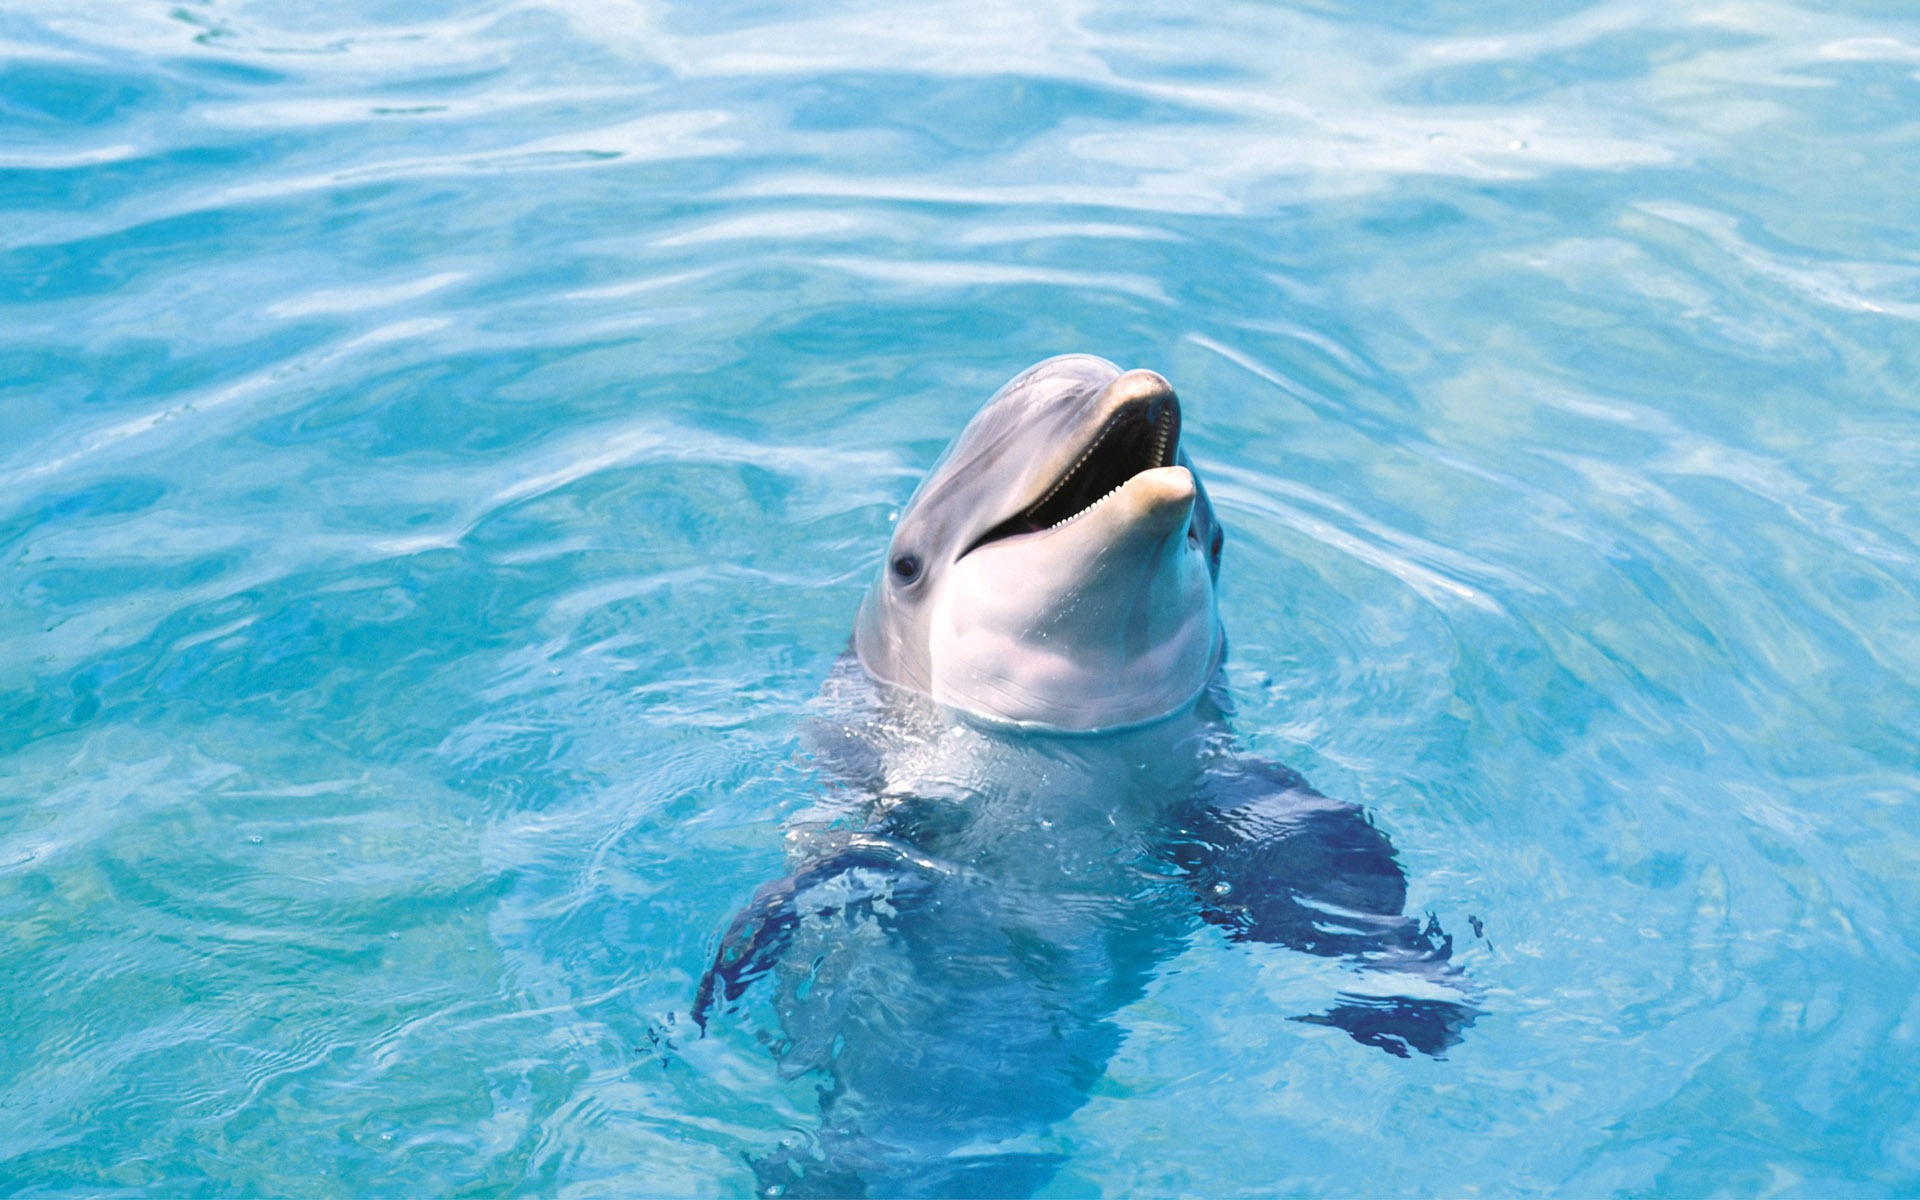 Dolphin Wallpaper Dolphins Animals Wallpapers in jpg format for ...